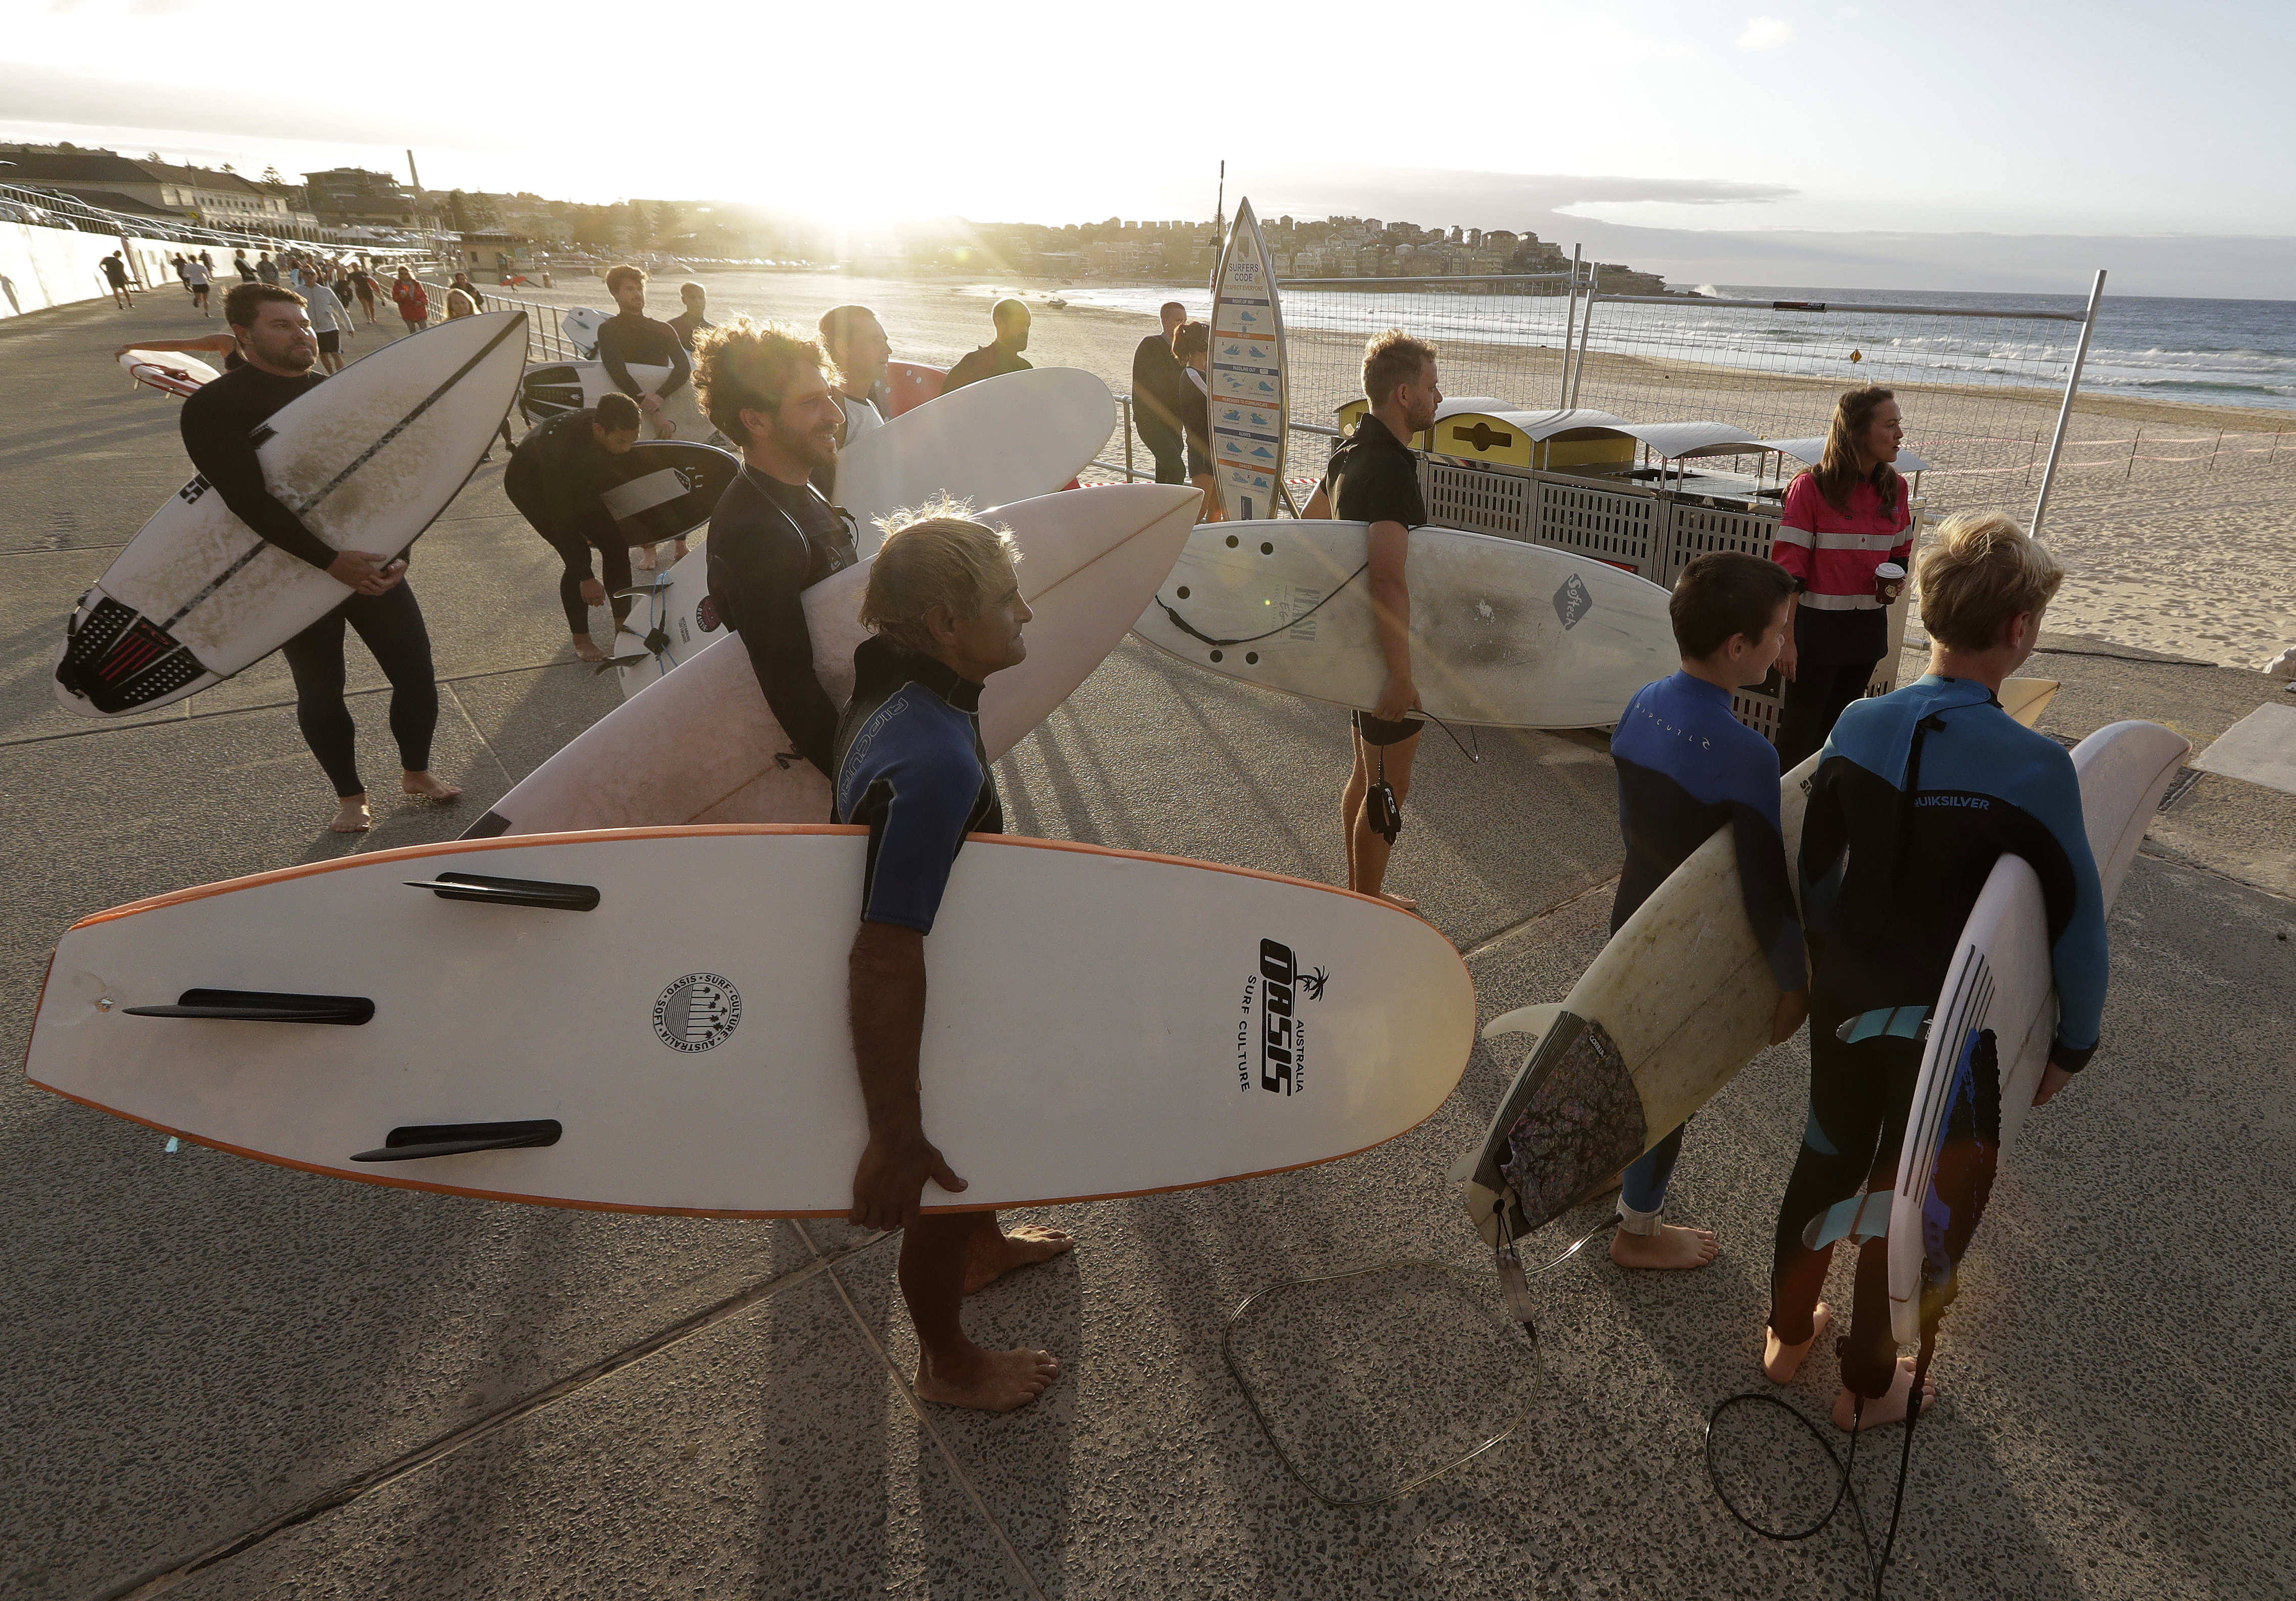 Surfers wait for officials to open Bondi Beach in Sydney, Australia, on April 28, as coronavirus pandemic restrictions are eased.